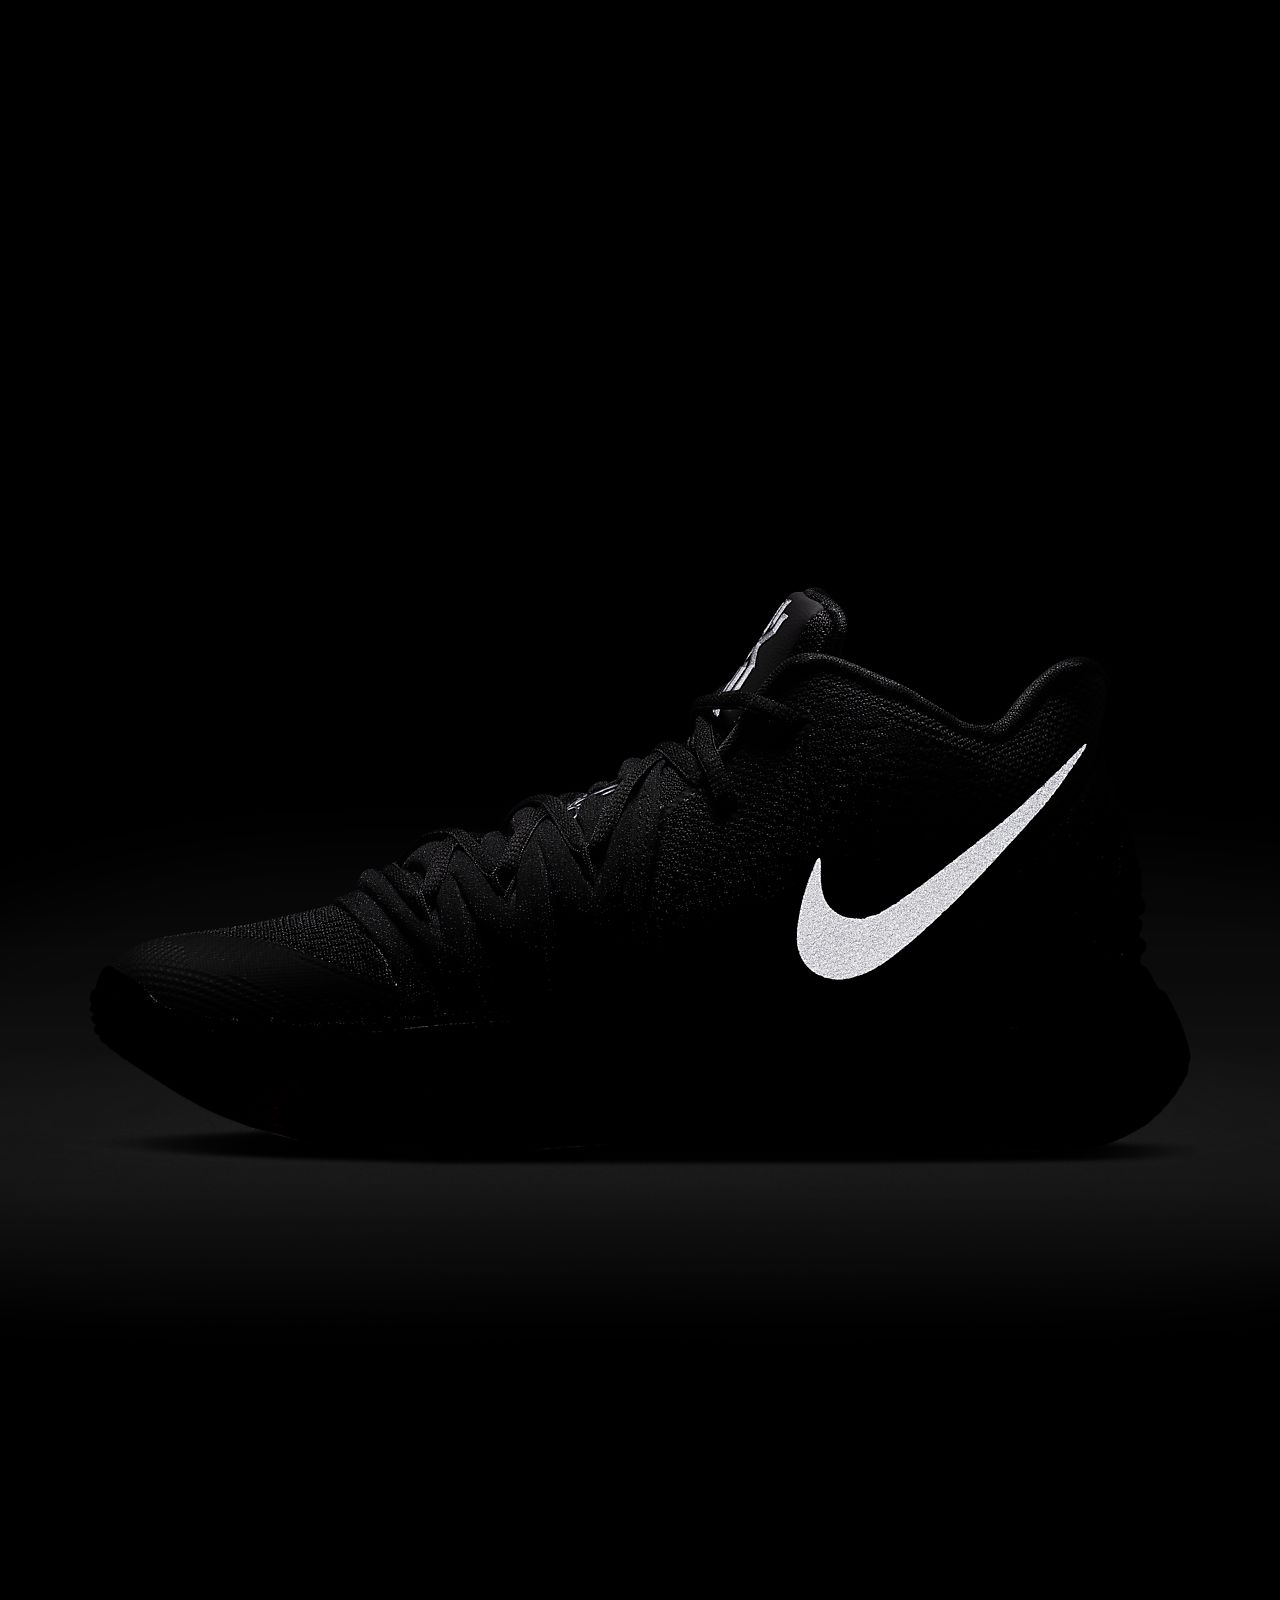 852d10e1 Low Resolution Kyrie 5 Basketball Shoe Kyrie 5 Basketball Shoe